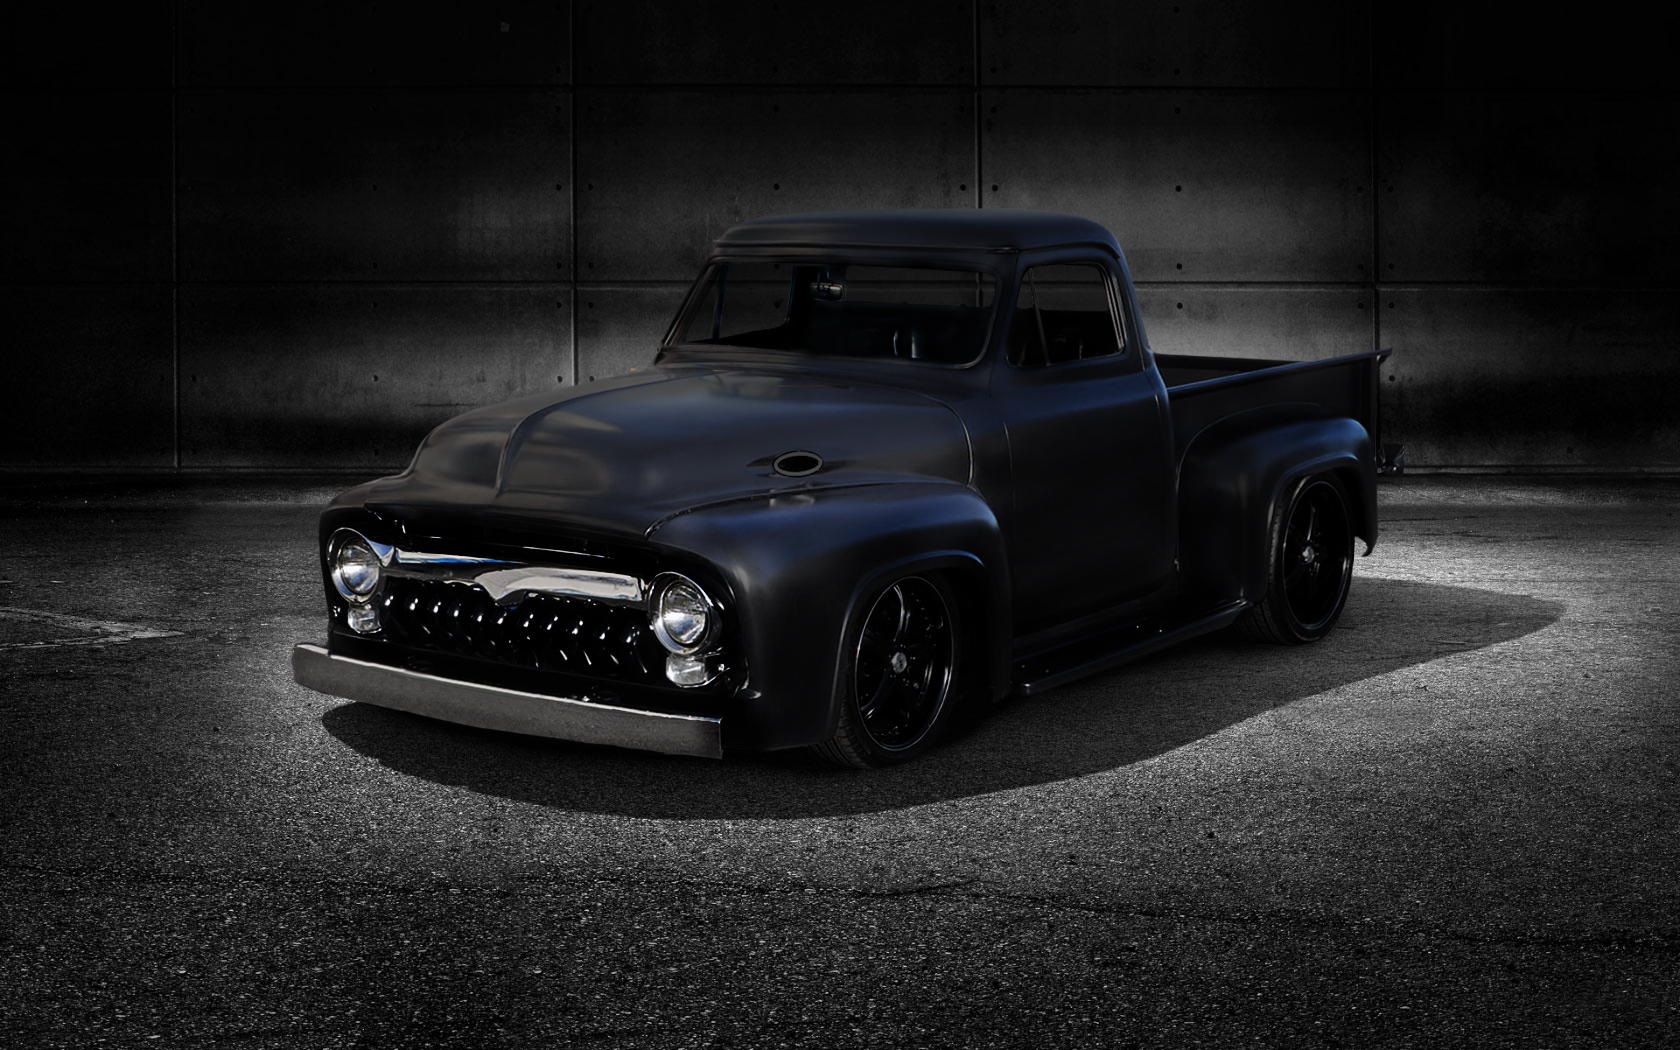 Classic Ford Truck Wallpaper Desktop #11355 Wallpaper | High